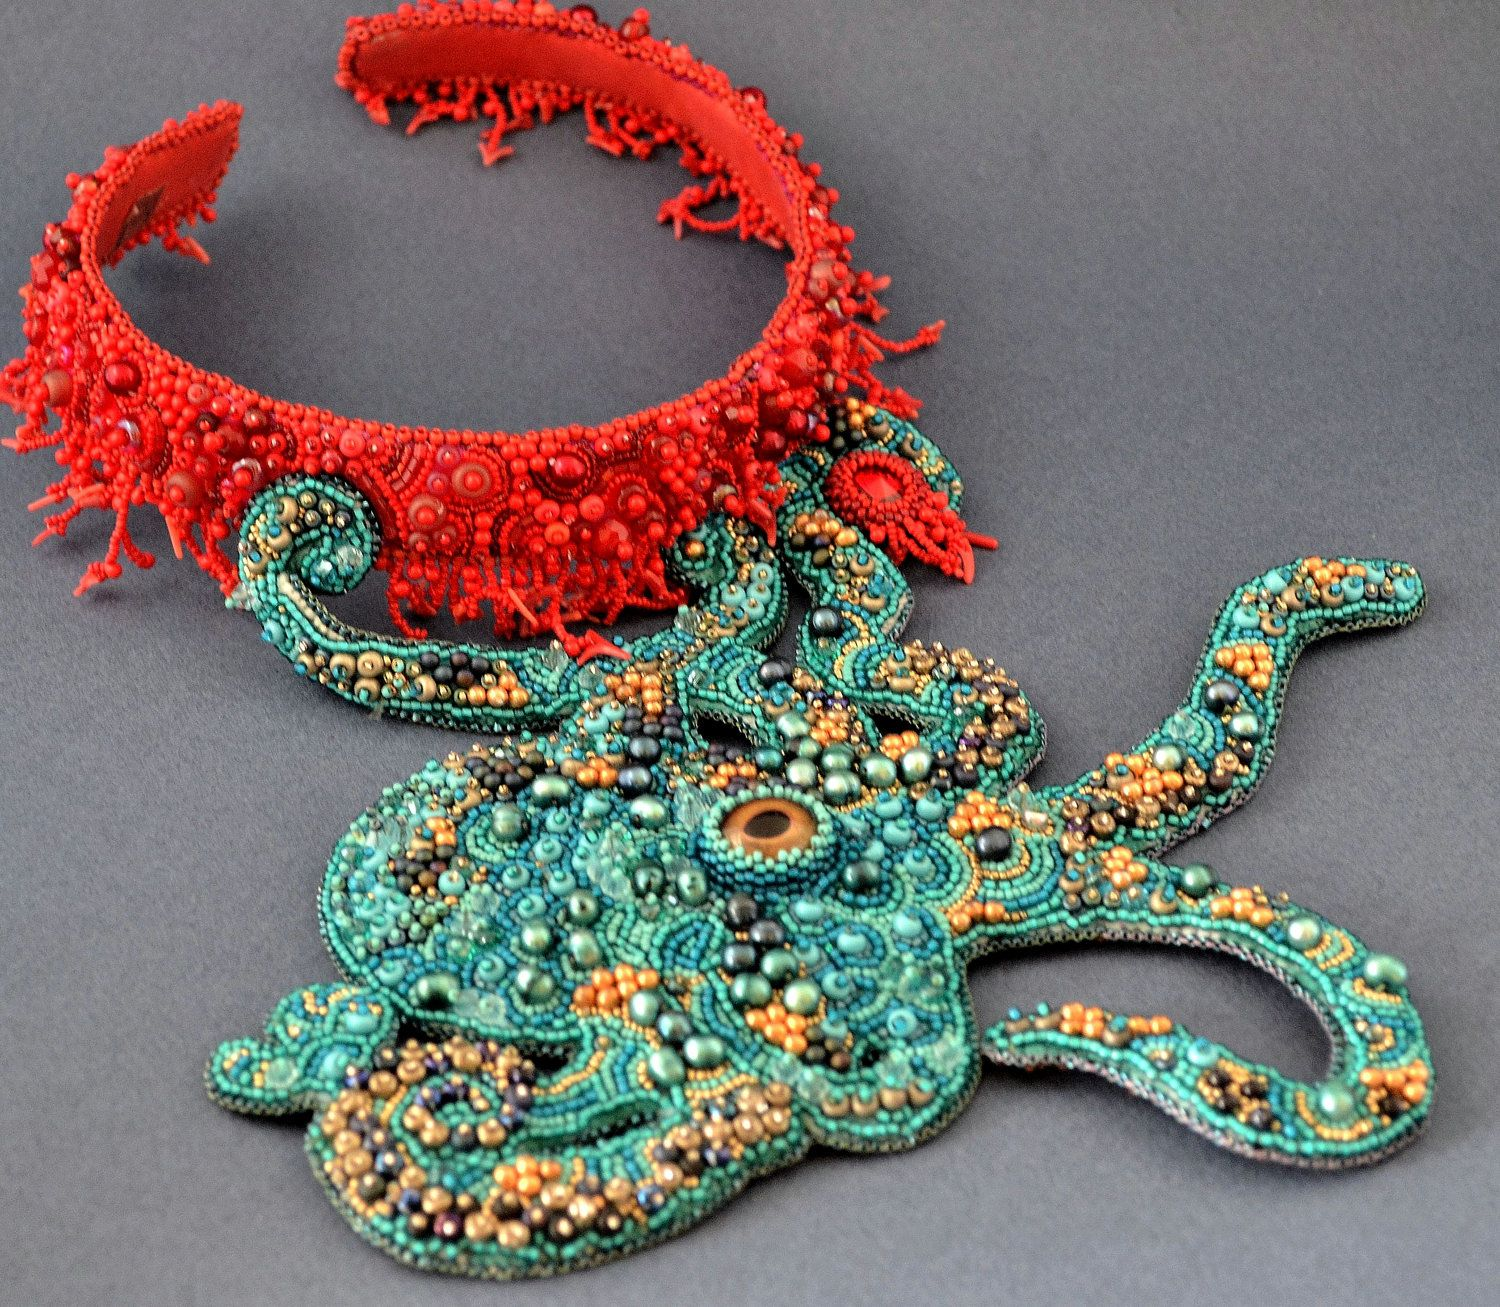 Embroidered Beads: Octopus Bead Embroidery Necklace